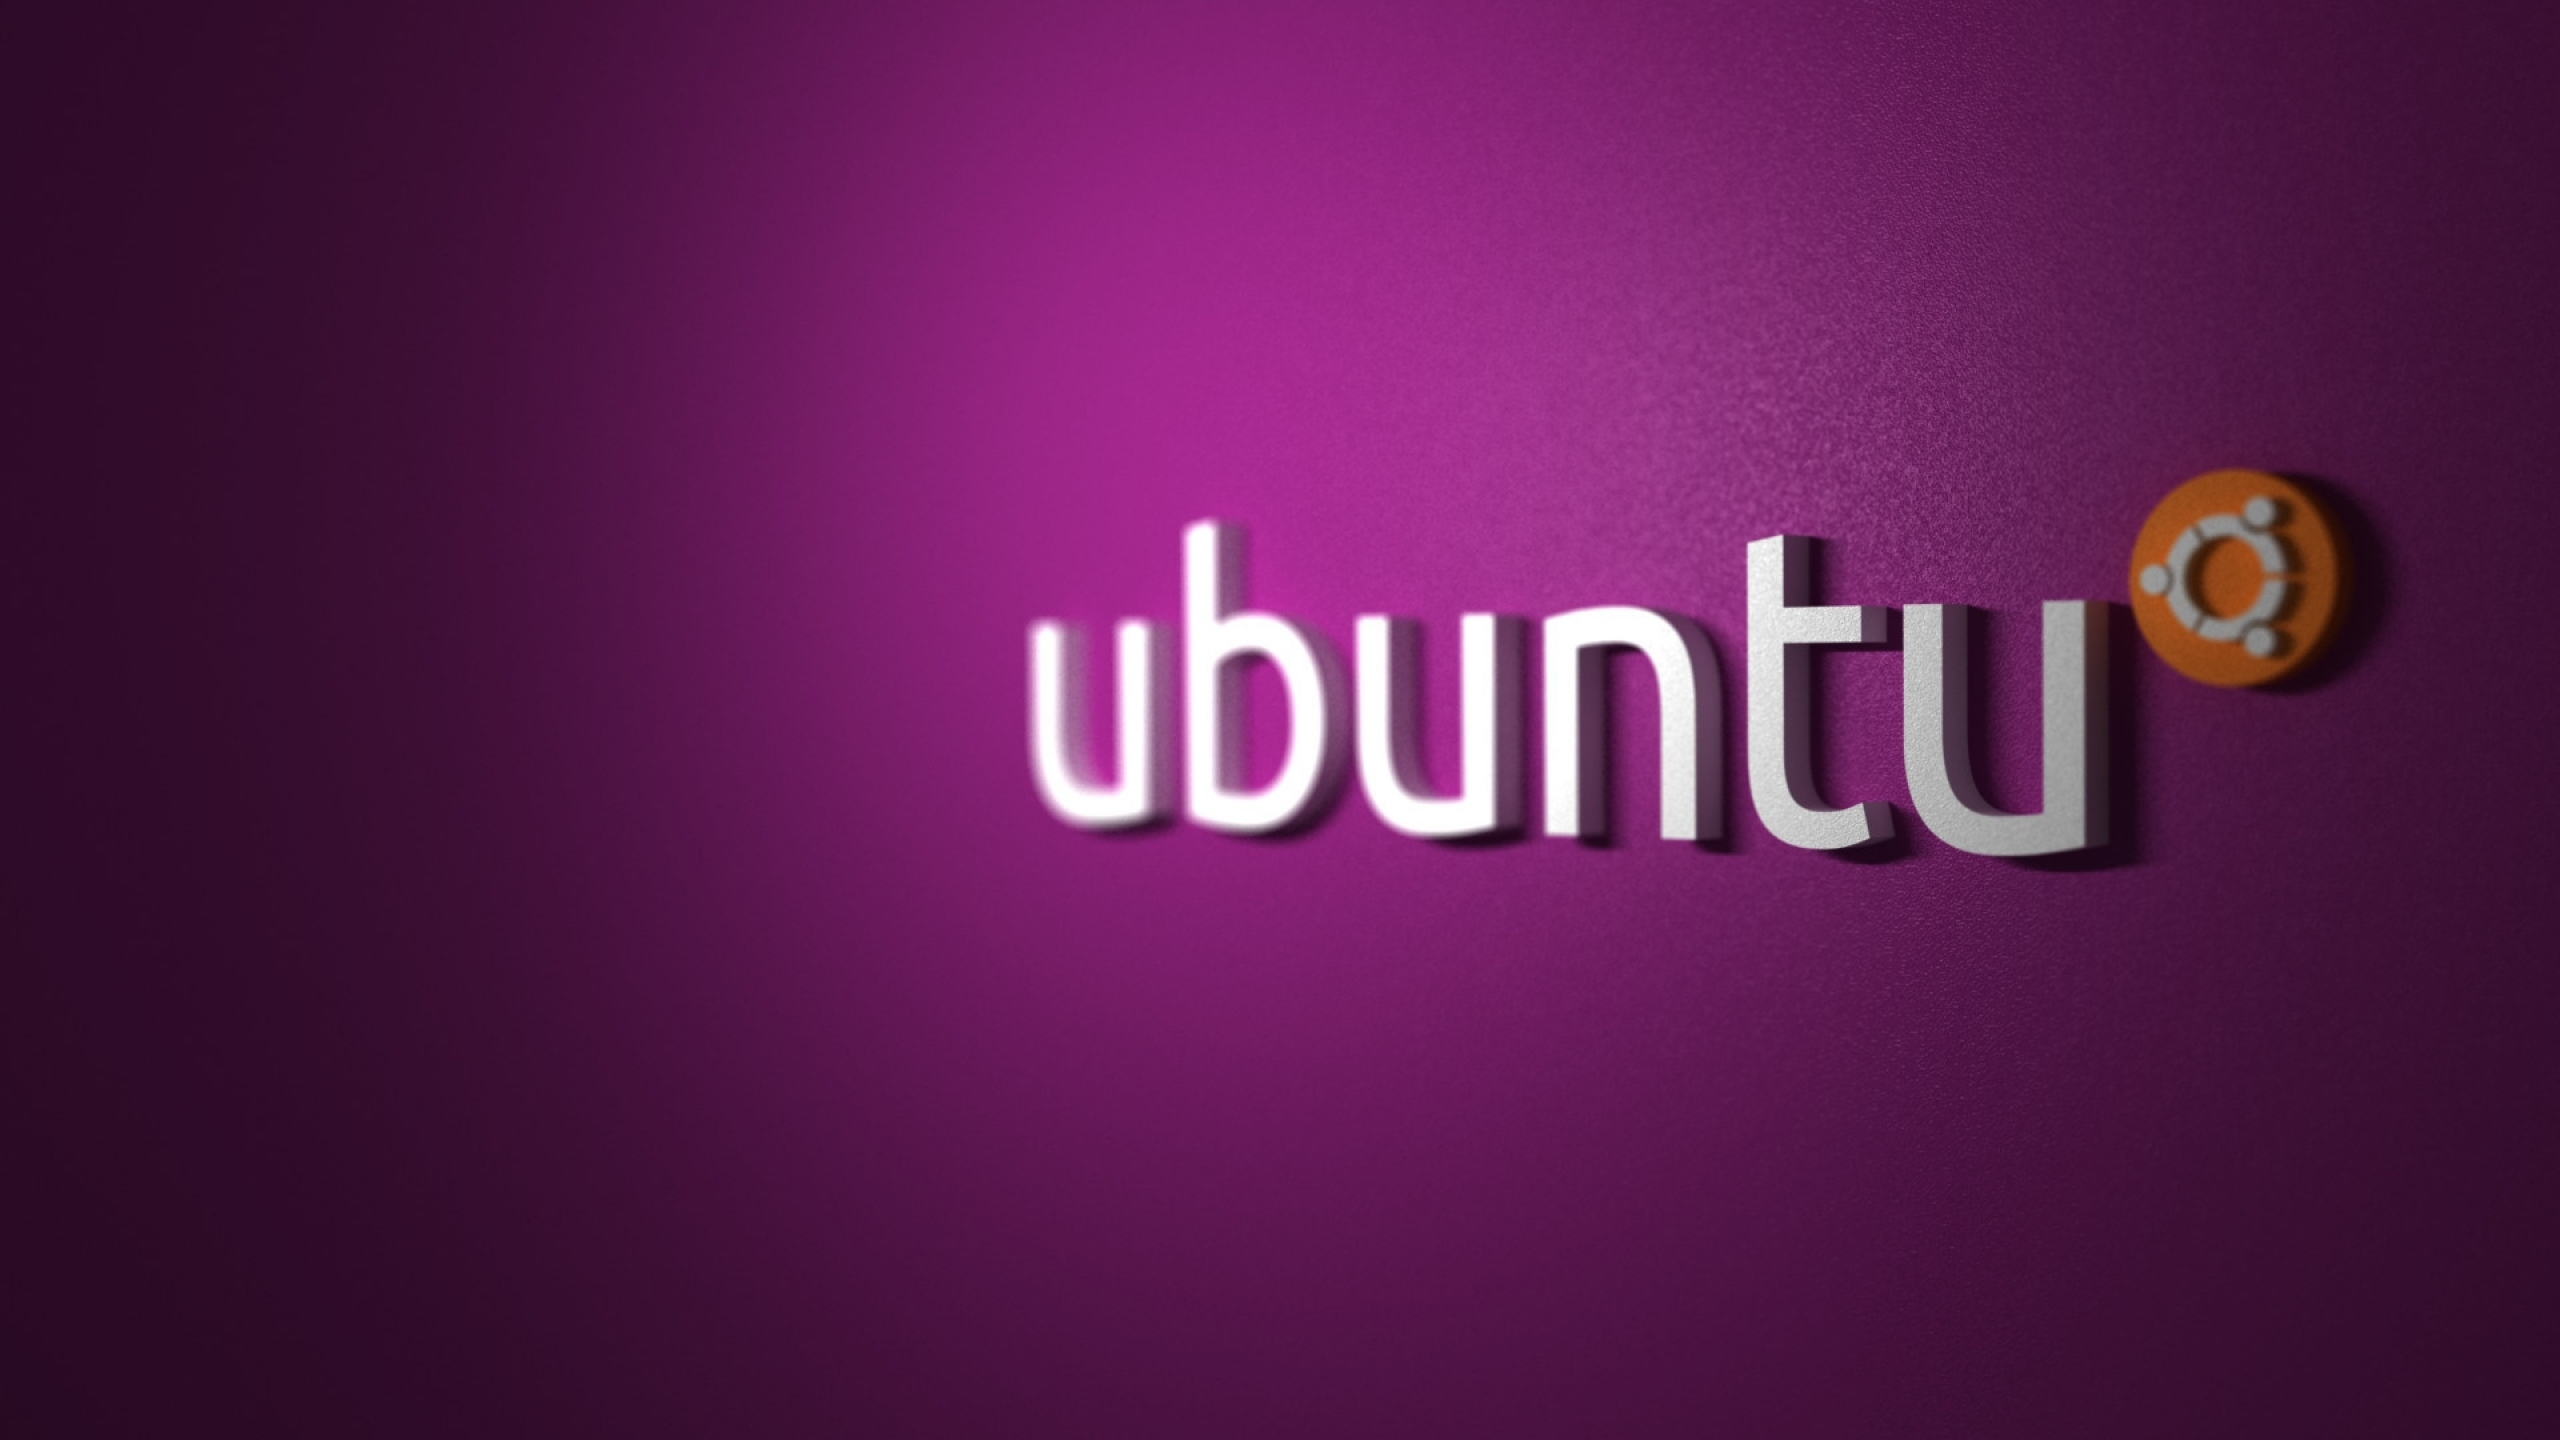 2560x1440 Ubuntu Pink Desktop Pc And Mac Wallpaper